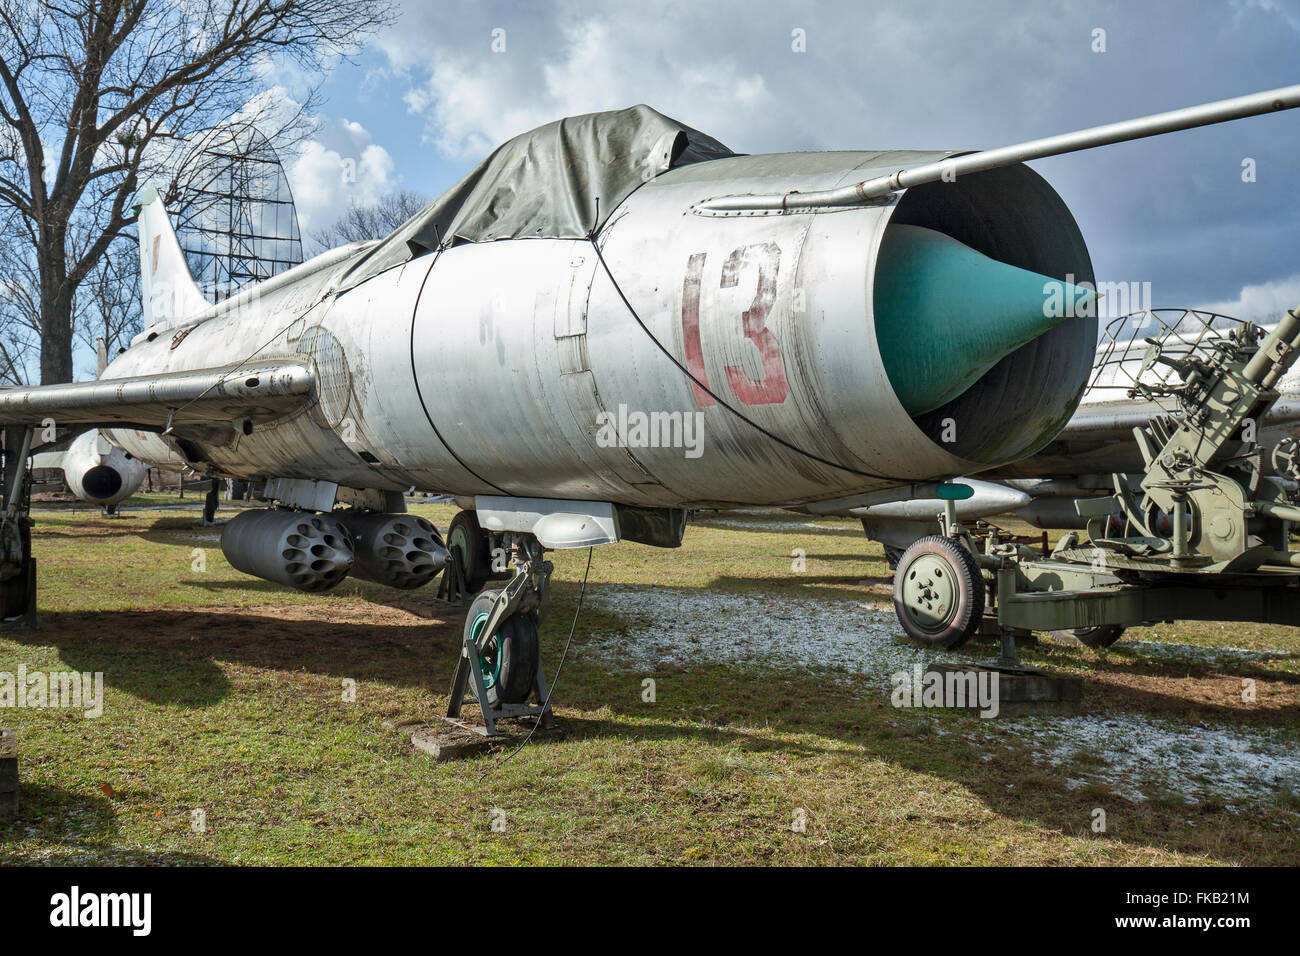 Polish Air Force Sukhoi Su-7BKL Fitter-A standing in the Museum of Polish Military Technology, Warsaw, Poland. - Stock Image